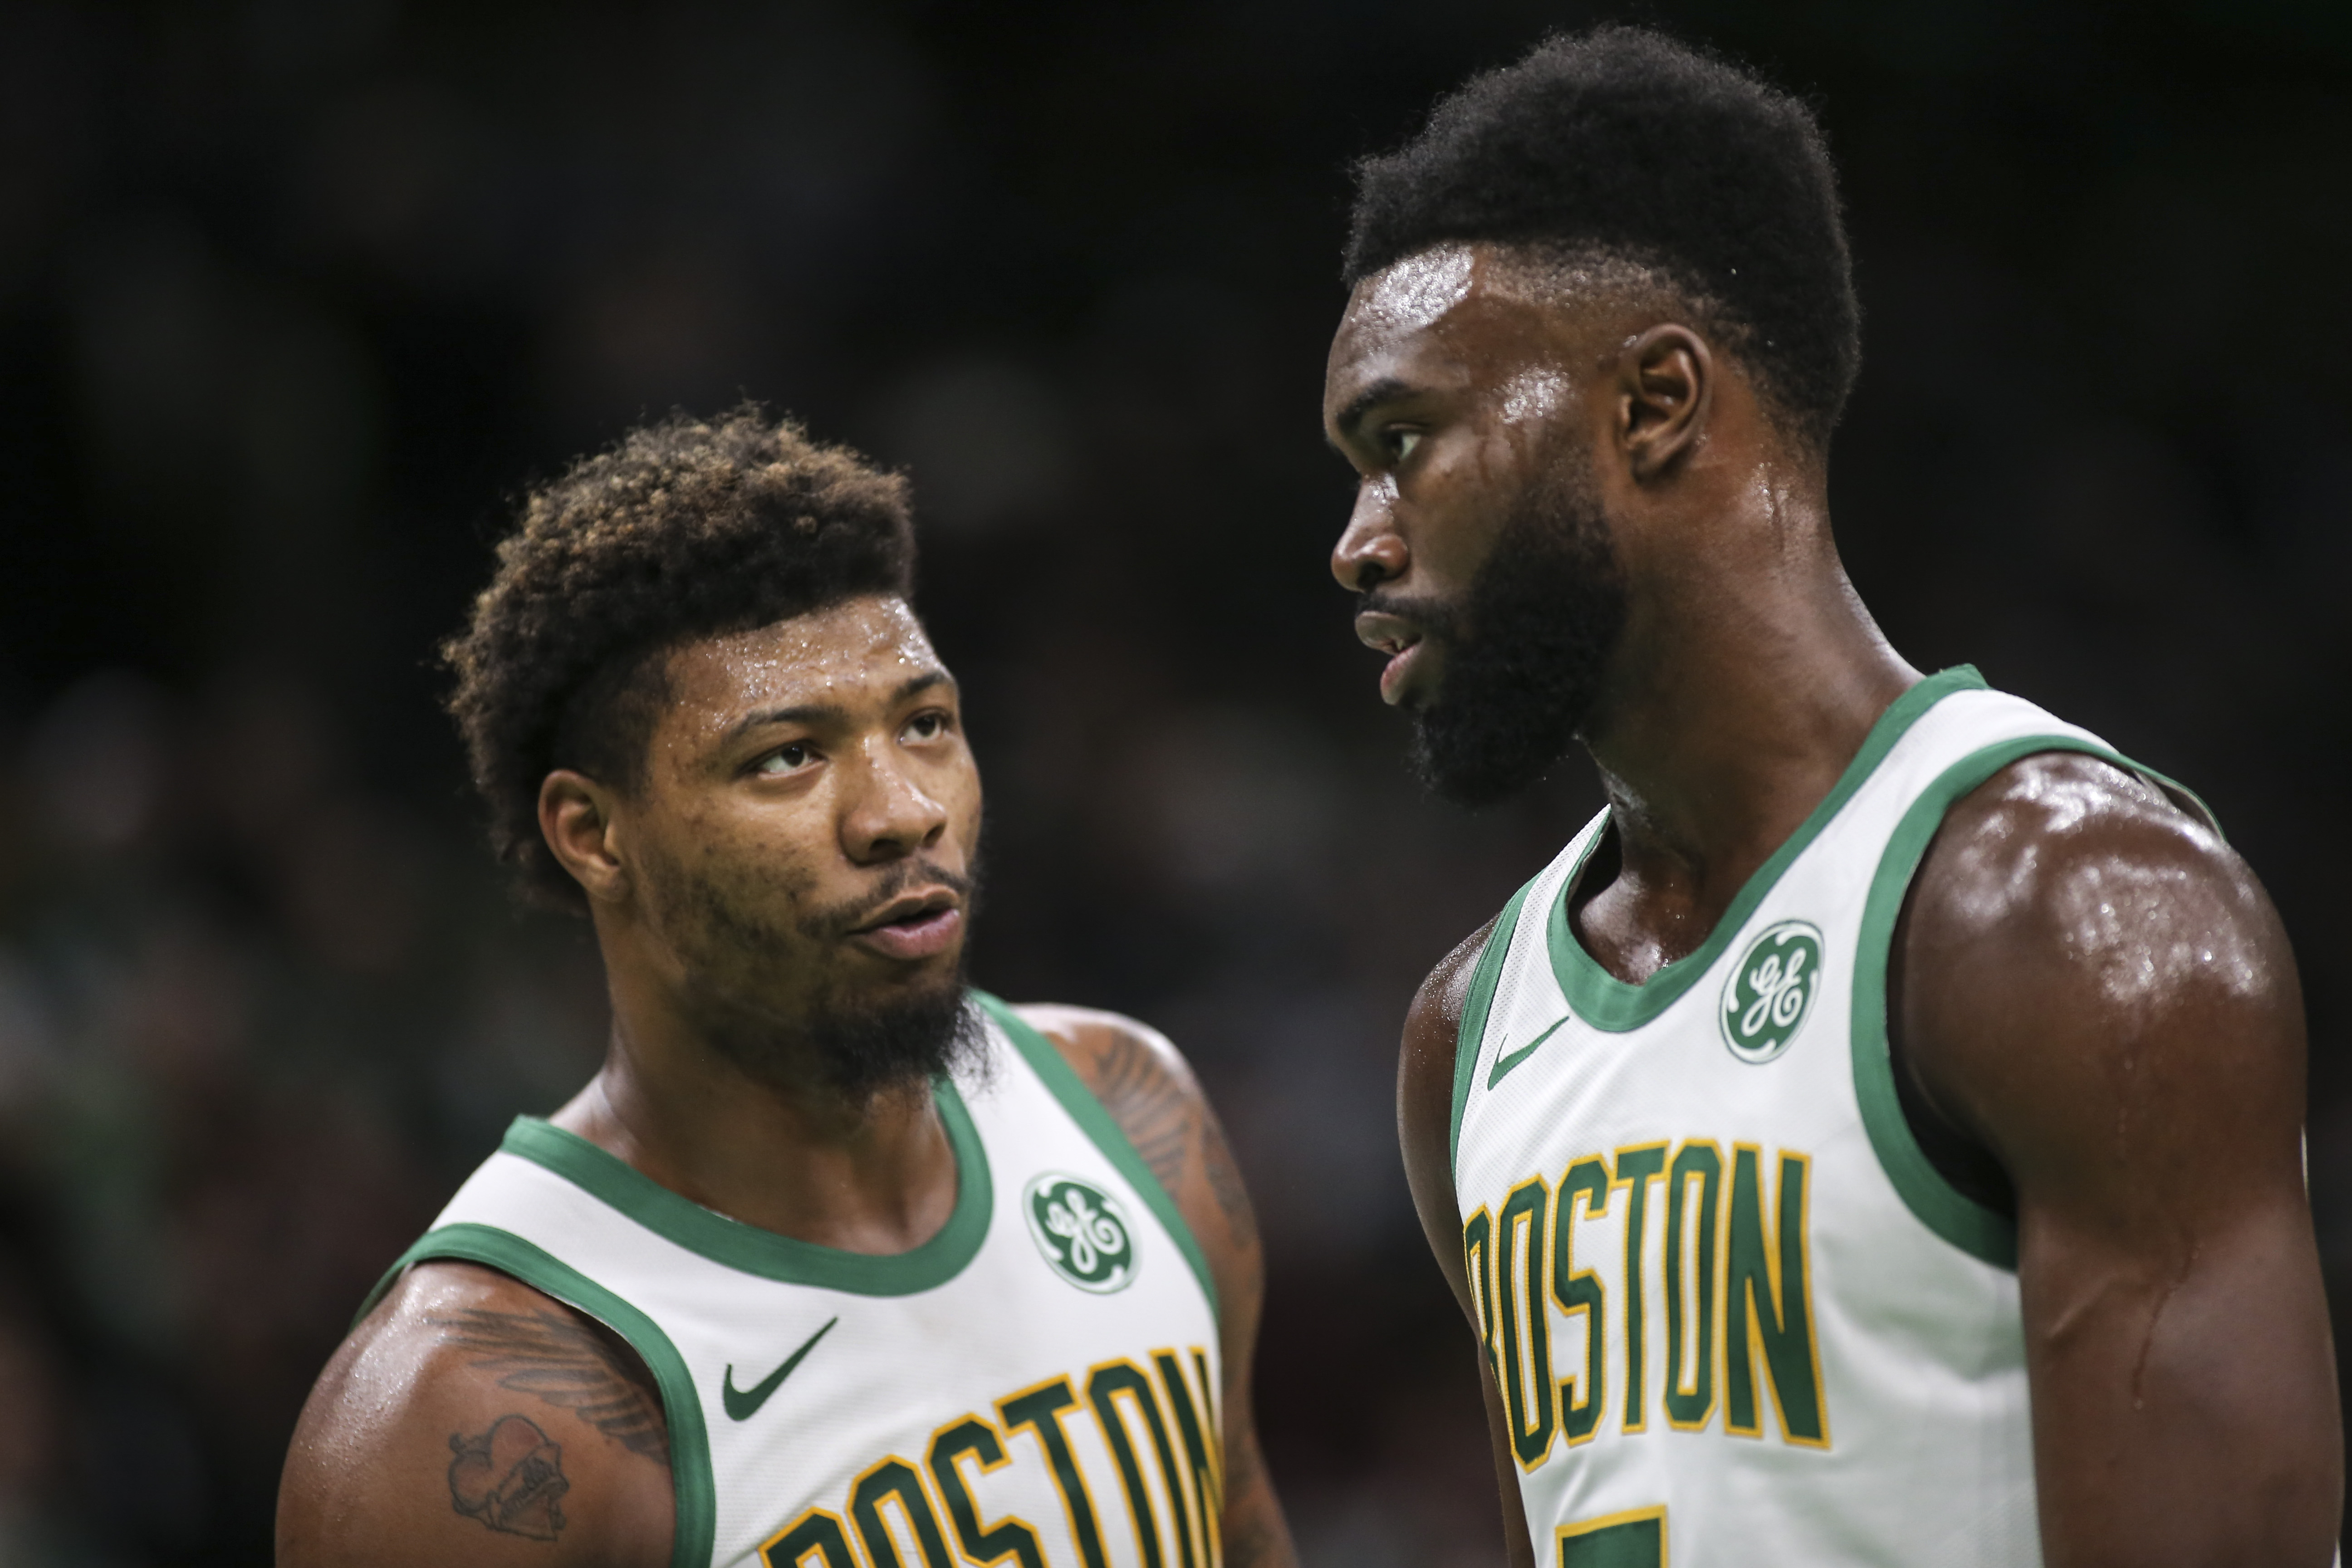 Celtics Teammates Marcus Smart And Jaylen Brown Reportedly Got Into Heated Confrontation And Had To Be Separated After Game 2 Loss To Miami Heat